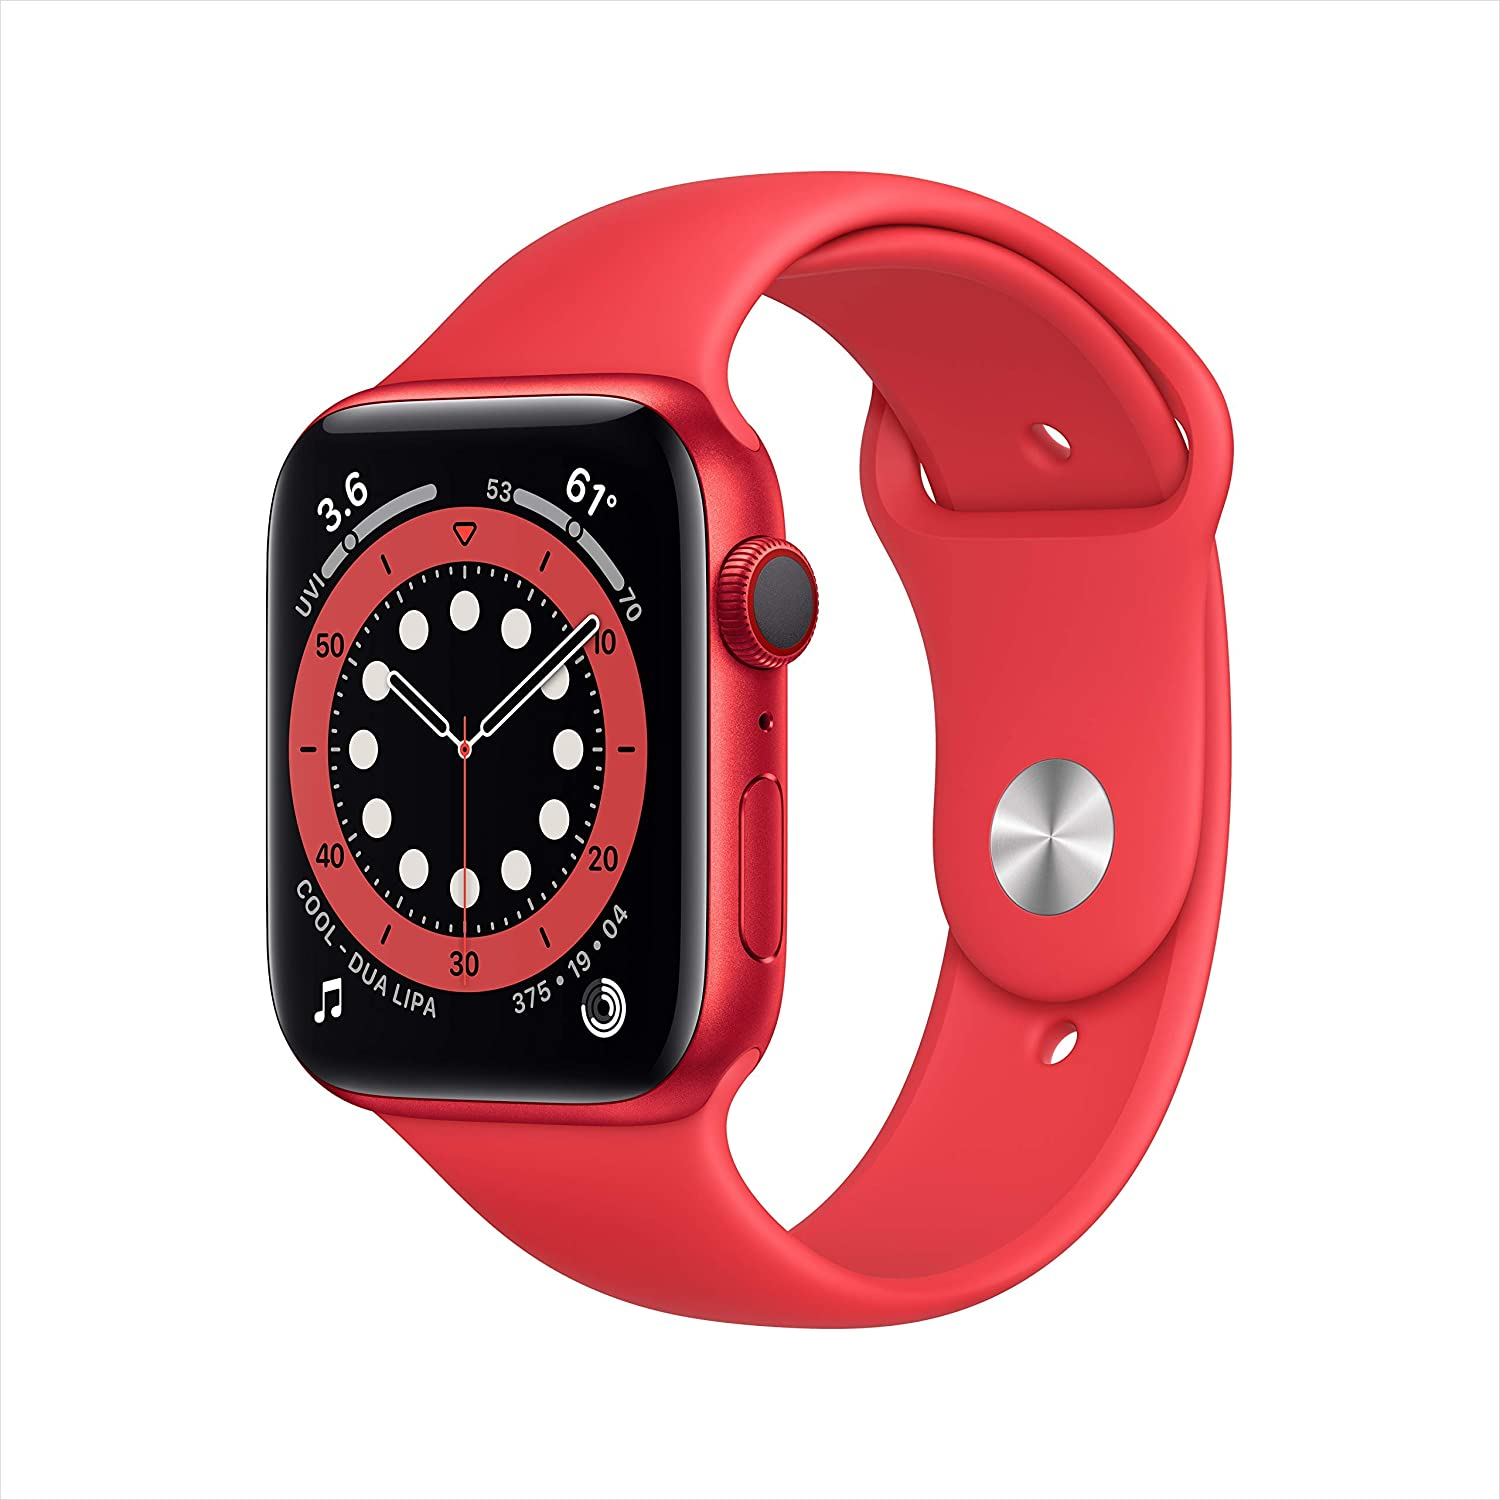 Apple Watch Series 6 (GPS + Cellular, 44mm) - (Product) RED Aluminum Case with RED Sport Band (Renewed)